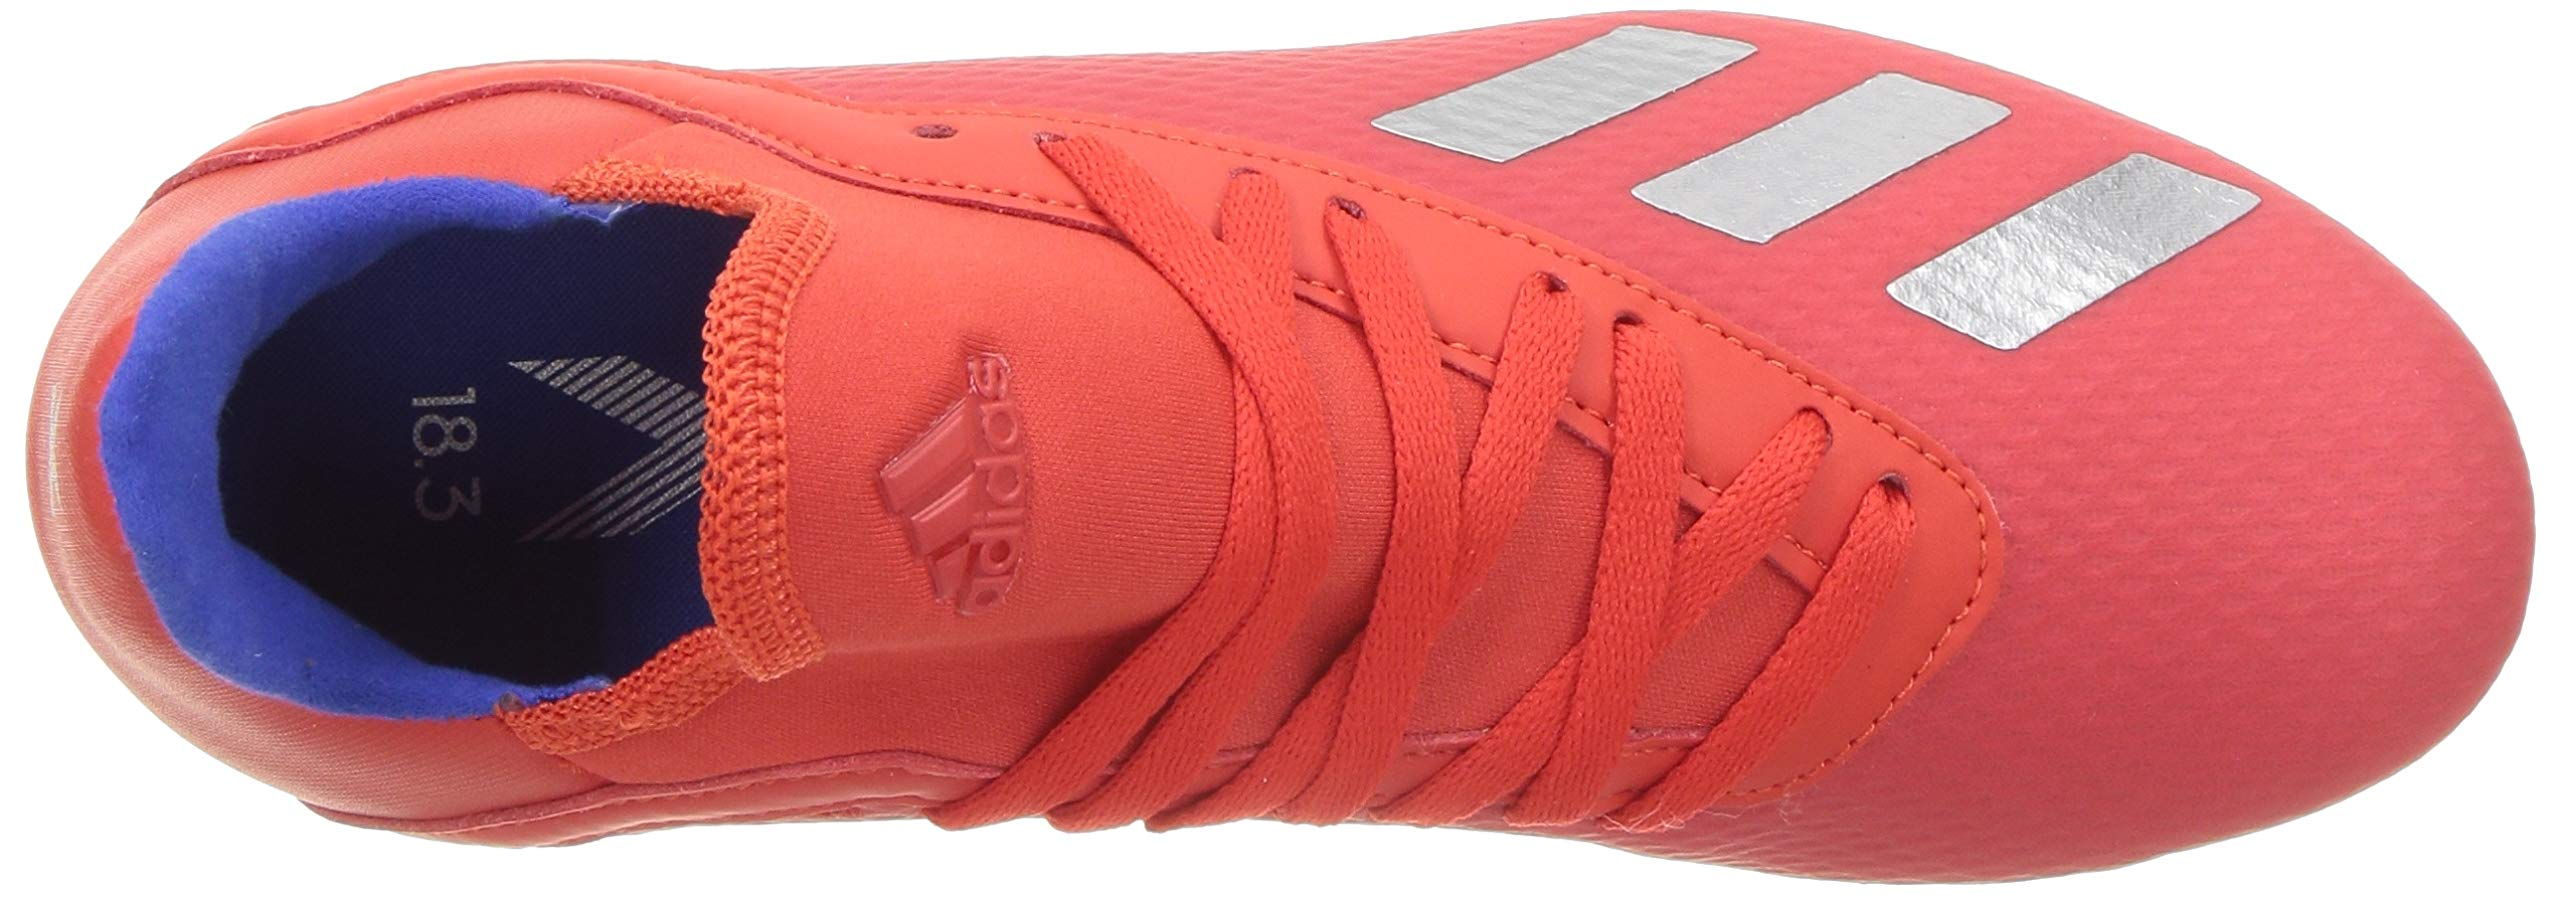 adidas X 18.3 Firm Ground, Active red/Silver Metallic/Bold Blue 13K M US Little Kid by adidas (Image #11)